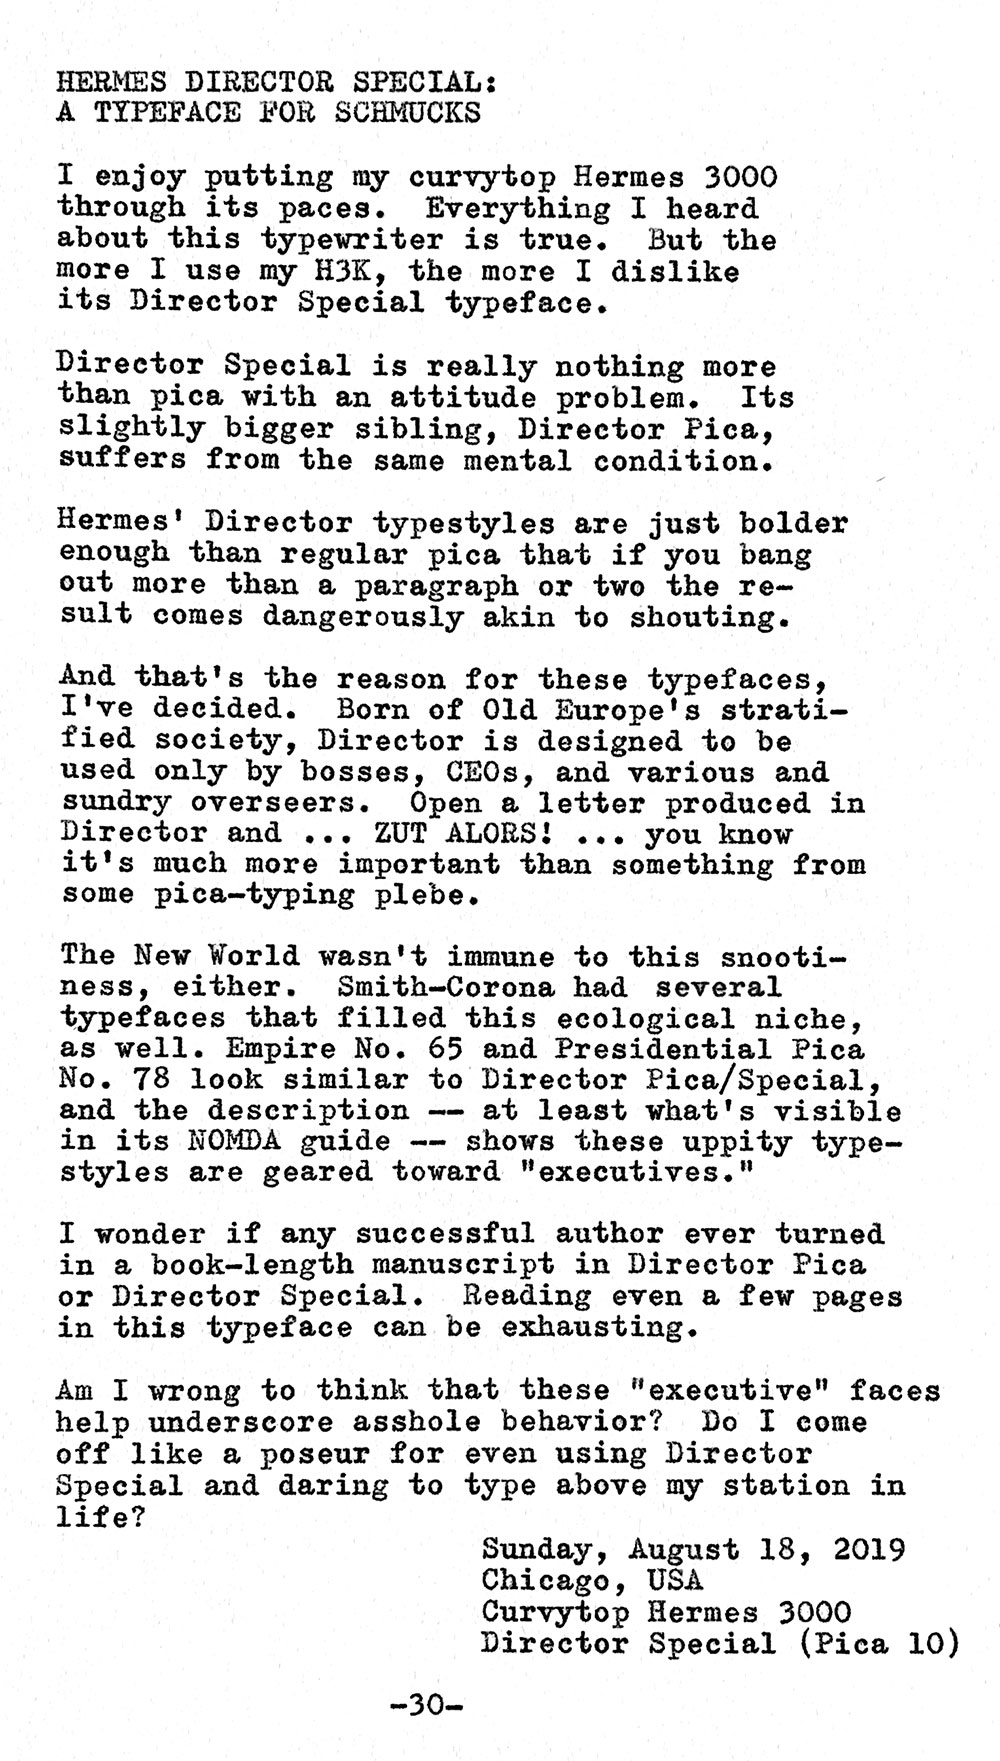 Photo of a typewritten page that contains the following text. Hermes Director Special a typeface for schmucks. I enjoy putting my curvytop Hermes 3000 through its paces. Everything I heard about this typewriter is true. But the more I use my H3K, the more I dislike its Director Special typeface. Director Special is really nothing more than pica with an attitude problem. Its slightly bigger sibling, Director Pica, suffers from the same mental condition. Hermes' Director typestyles are just bolder enough than regular pica that if you bang out more than a paragraph or two the result comes dangerously akin to shouting. And that's the reason for these typefaces, I've decided. Born of Old Europe's stratified society, Director is designed to be used only by bosses, CEOs, and various and sundry overseers. Open a letter produced in Director and ... ZUT ALORS! ... you know it's much more important than something from some pica—typing plebe. The New World wasn't immune to this snootiness, either. Smith—Corona had several typefaces that filled this ecological niche, as well. Empire No. 65 and Presidential Pica No. 78 look similar to Director Pica/Special, and the description — at least what's visible in its NOMDA guide — shows these uppity typestyles are geared toward